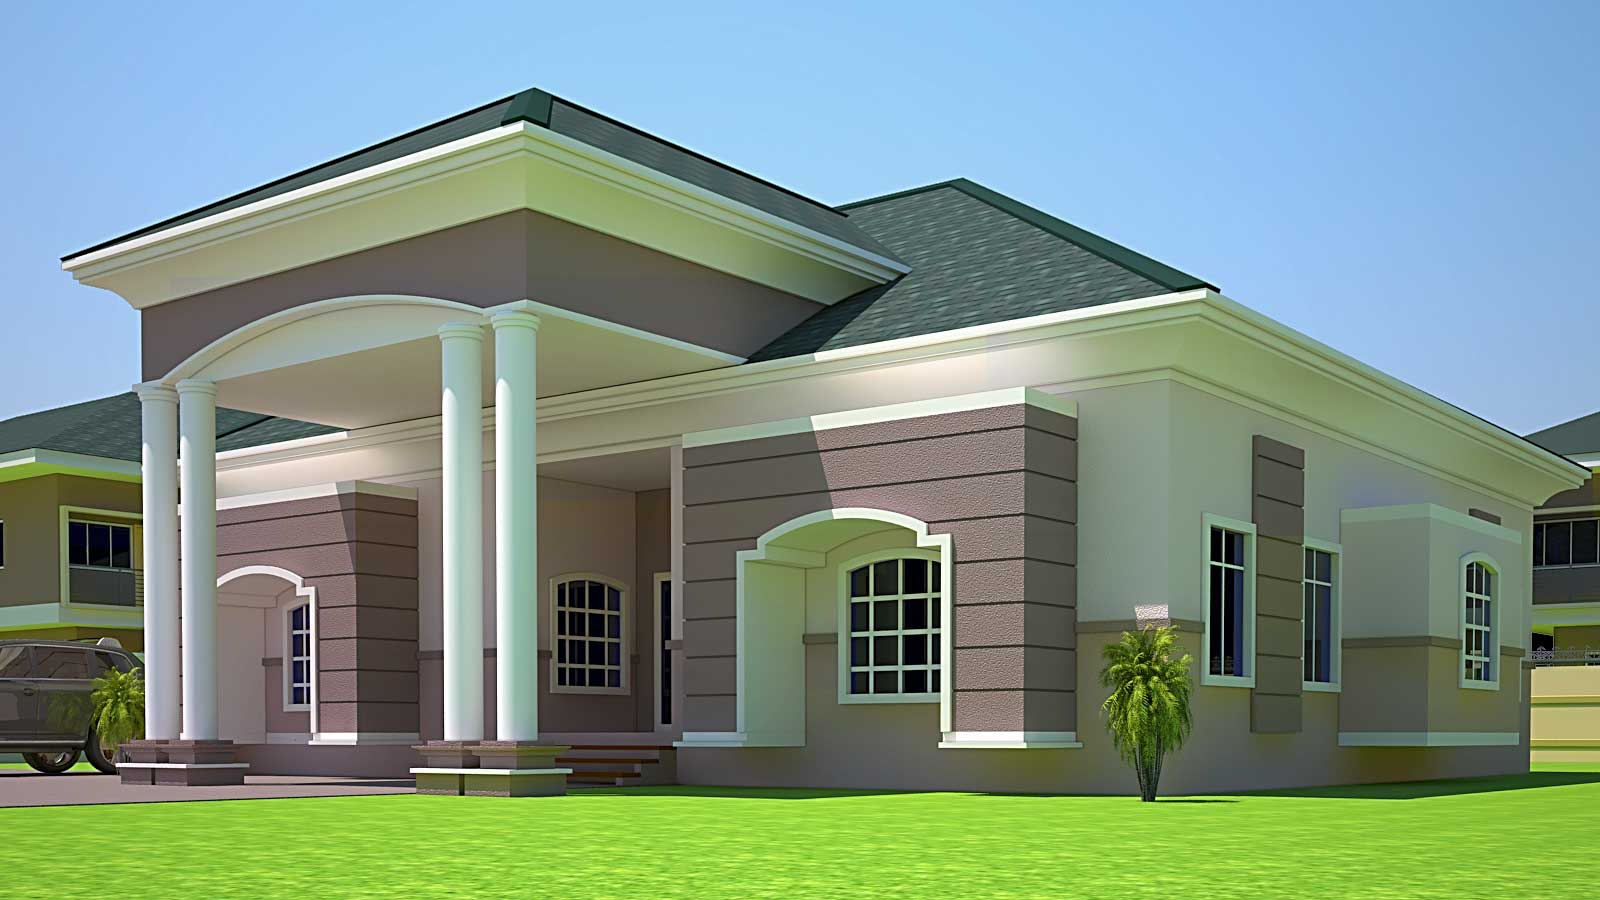 House Plans Ghana Holla Bedroom Plan